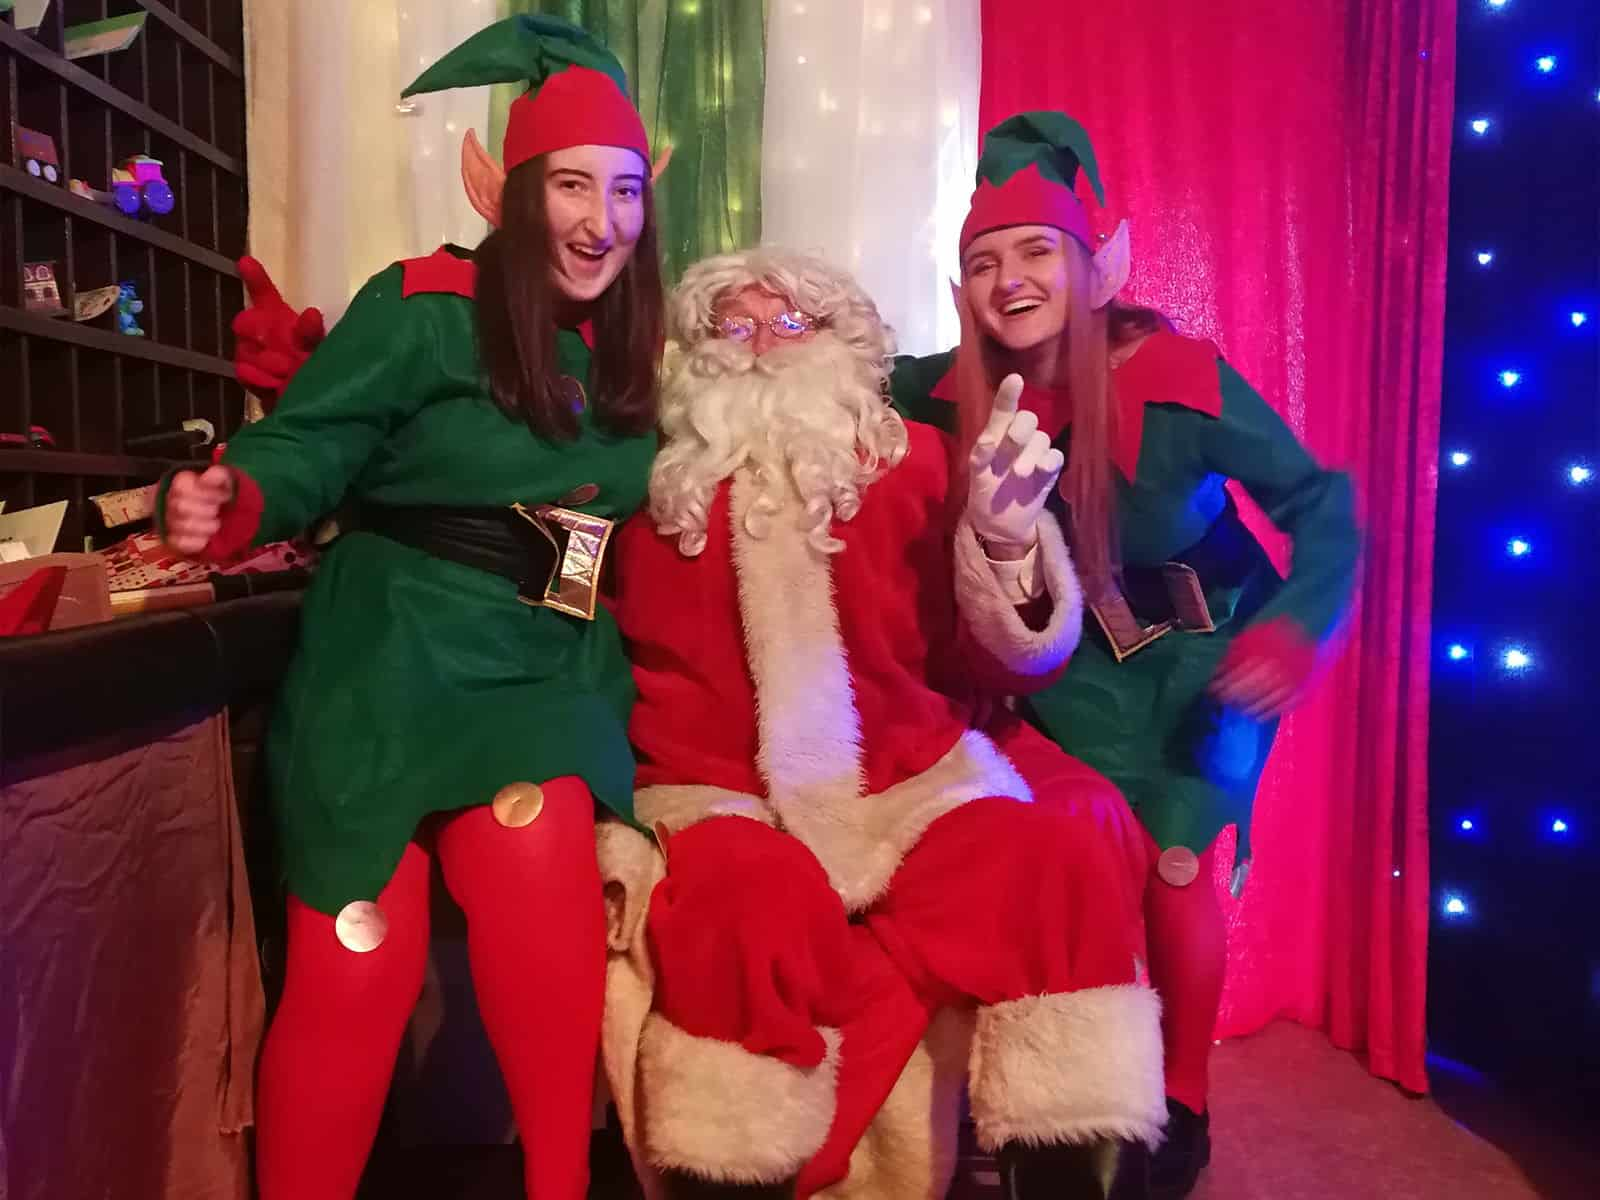 Santa and his elves are ready to meet all the kids - have you been good this year?